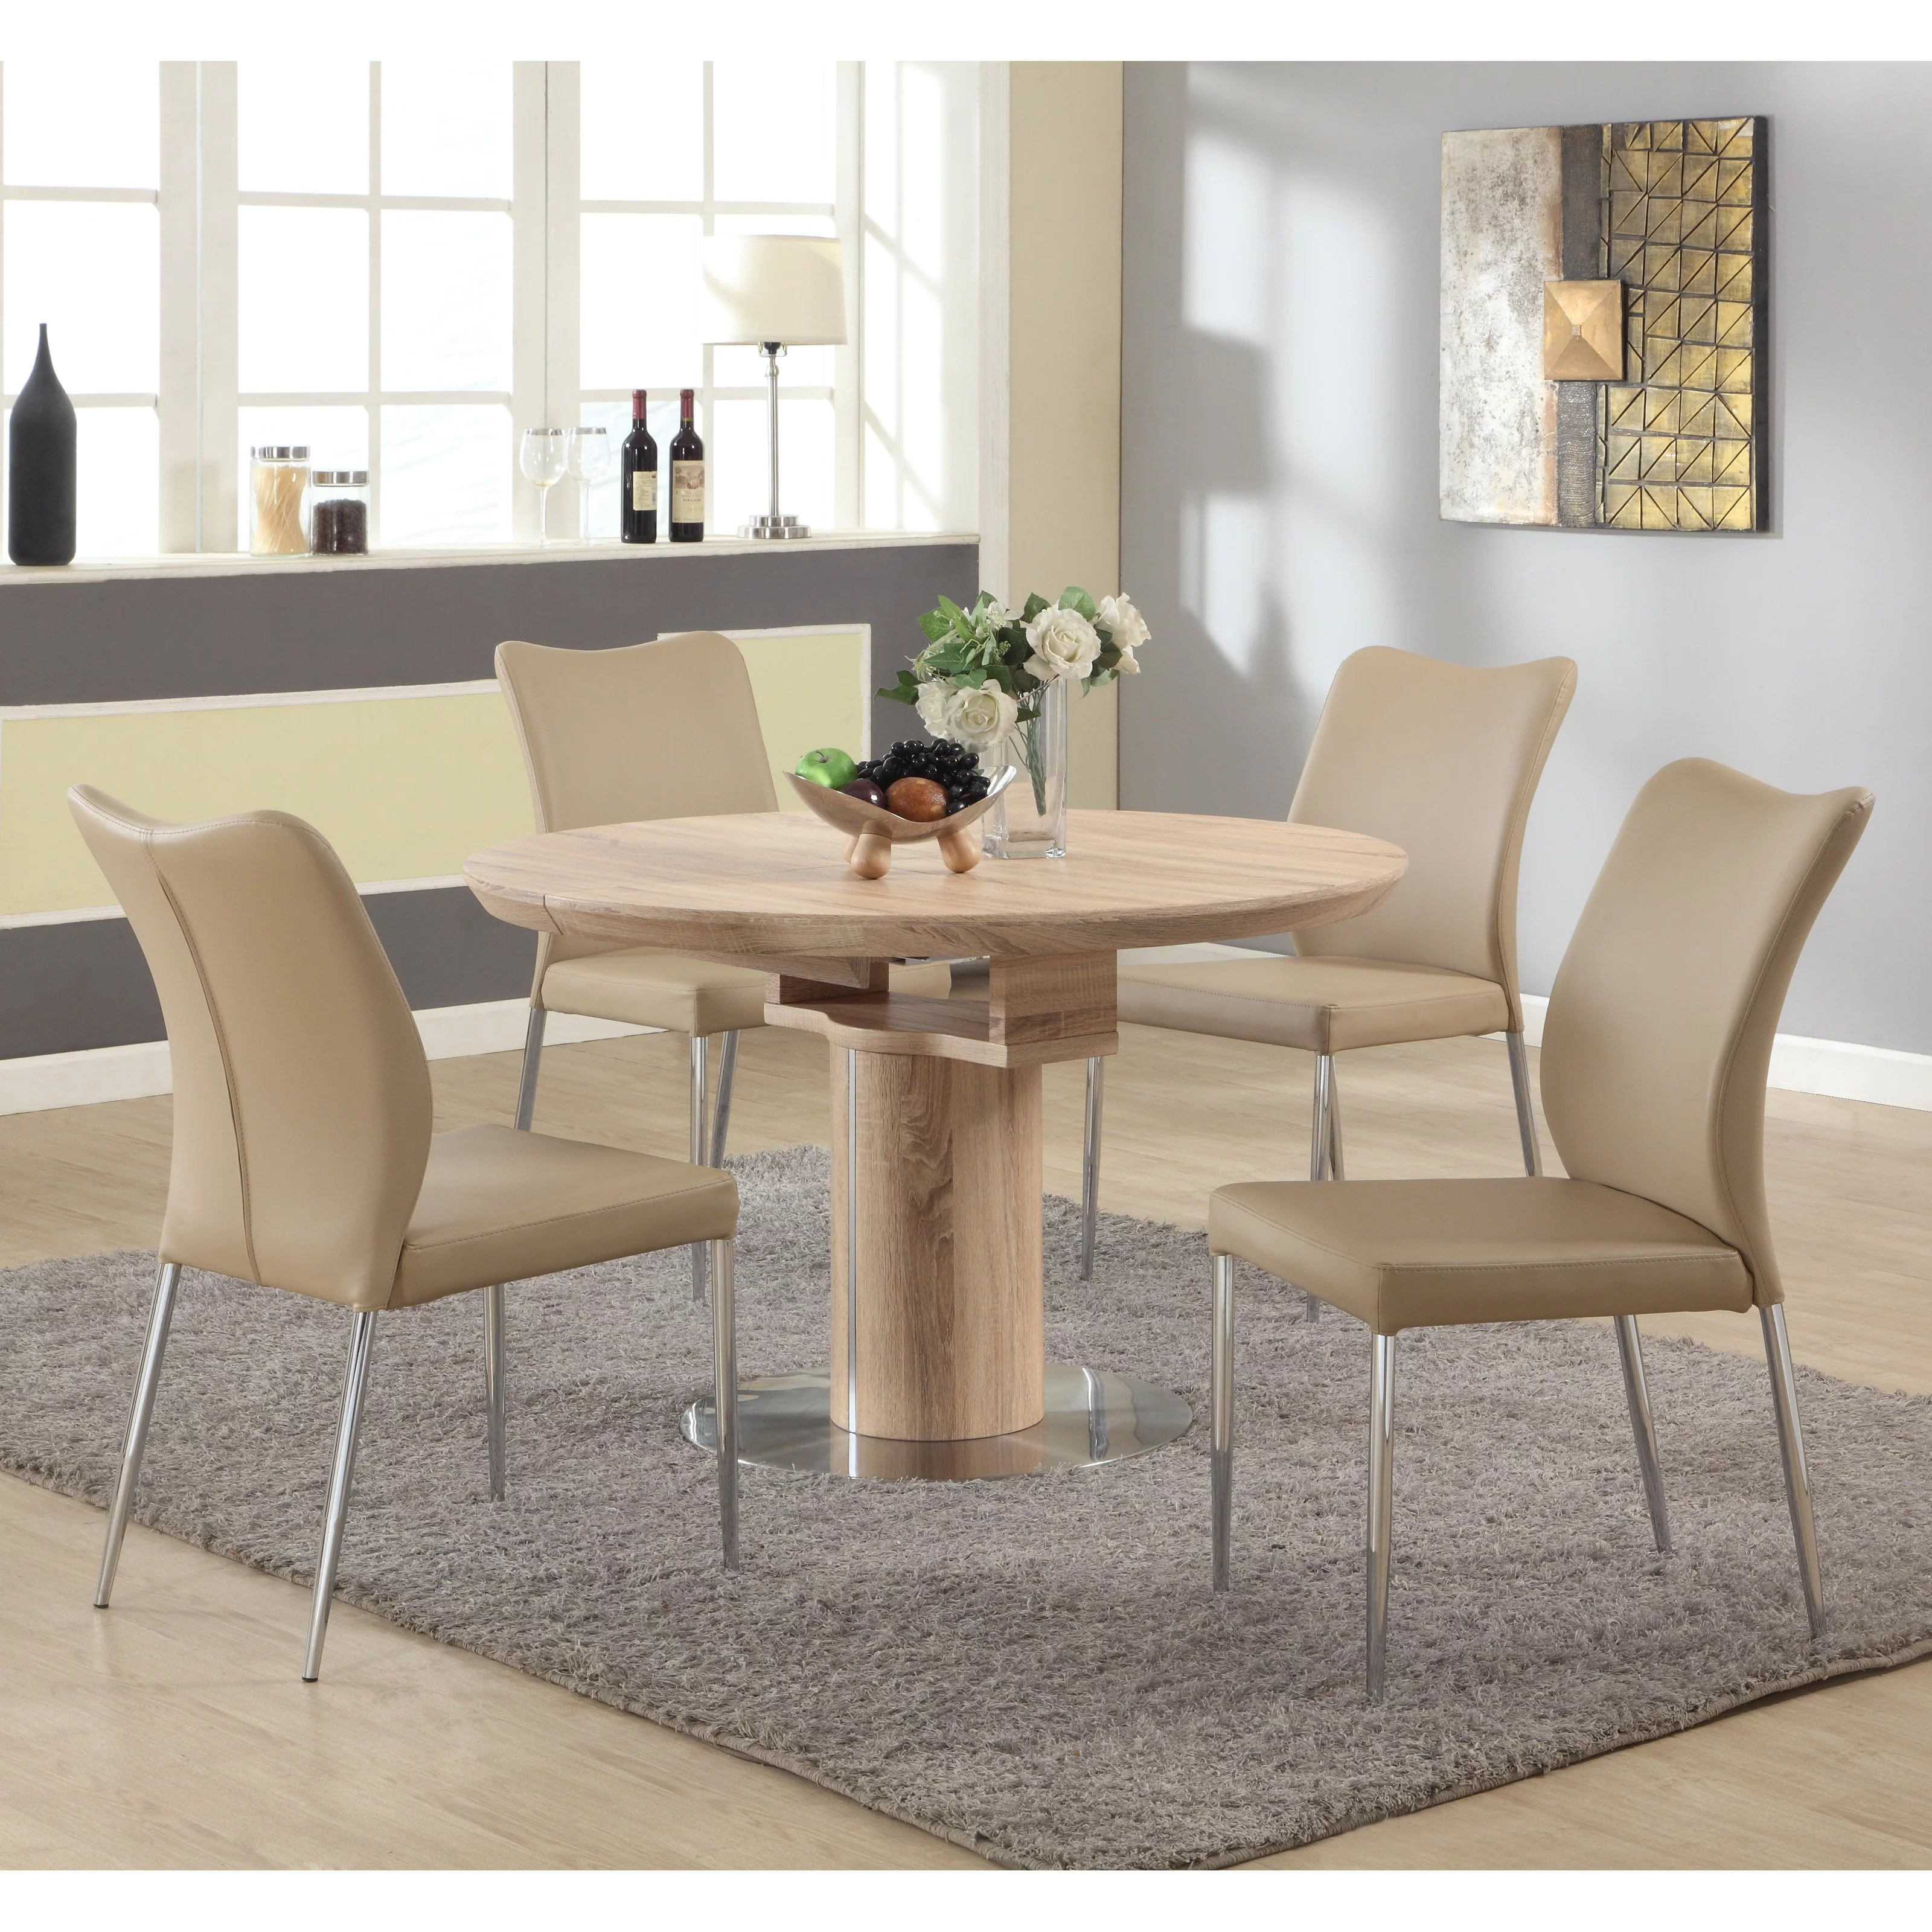 Chintaly Nora 5 Piece Dining Table Set